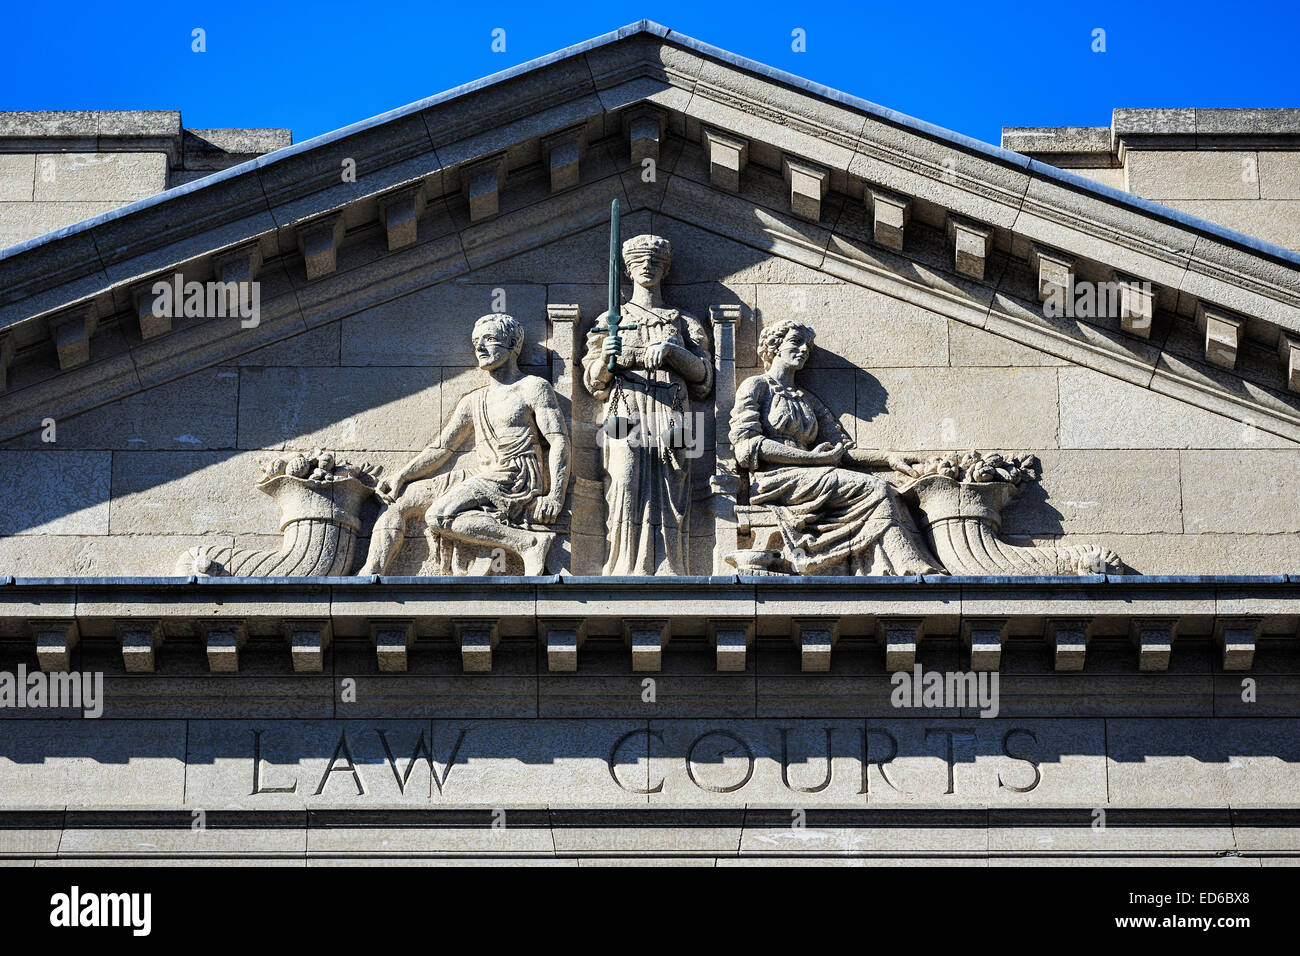 Scales of Justice on the Law Courts Building, Winnipeg, Manitoba, Canada. - Stock Image